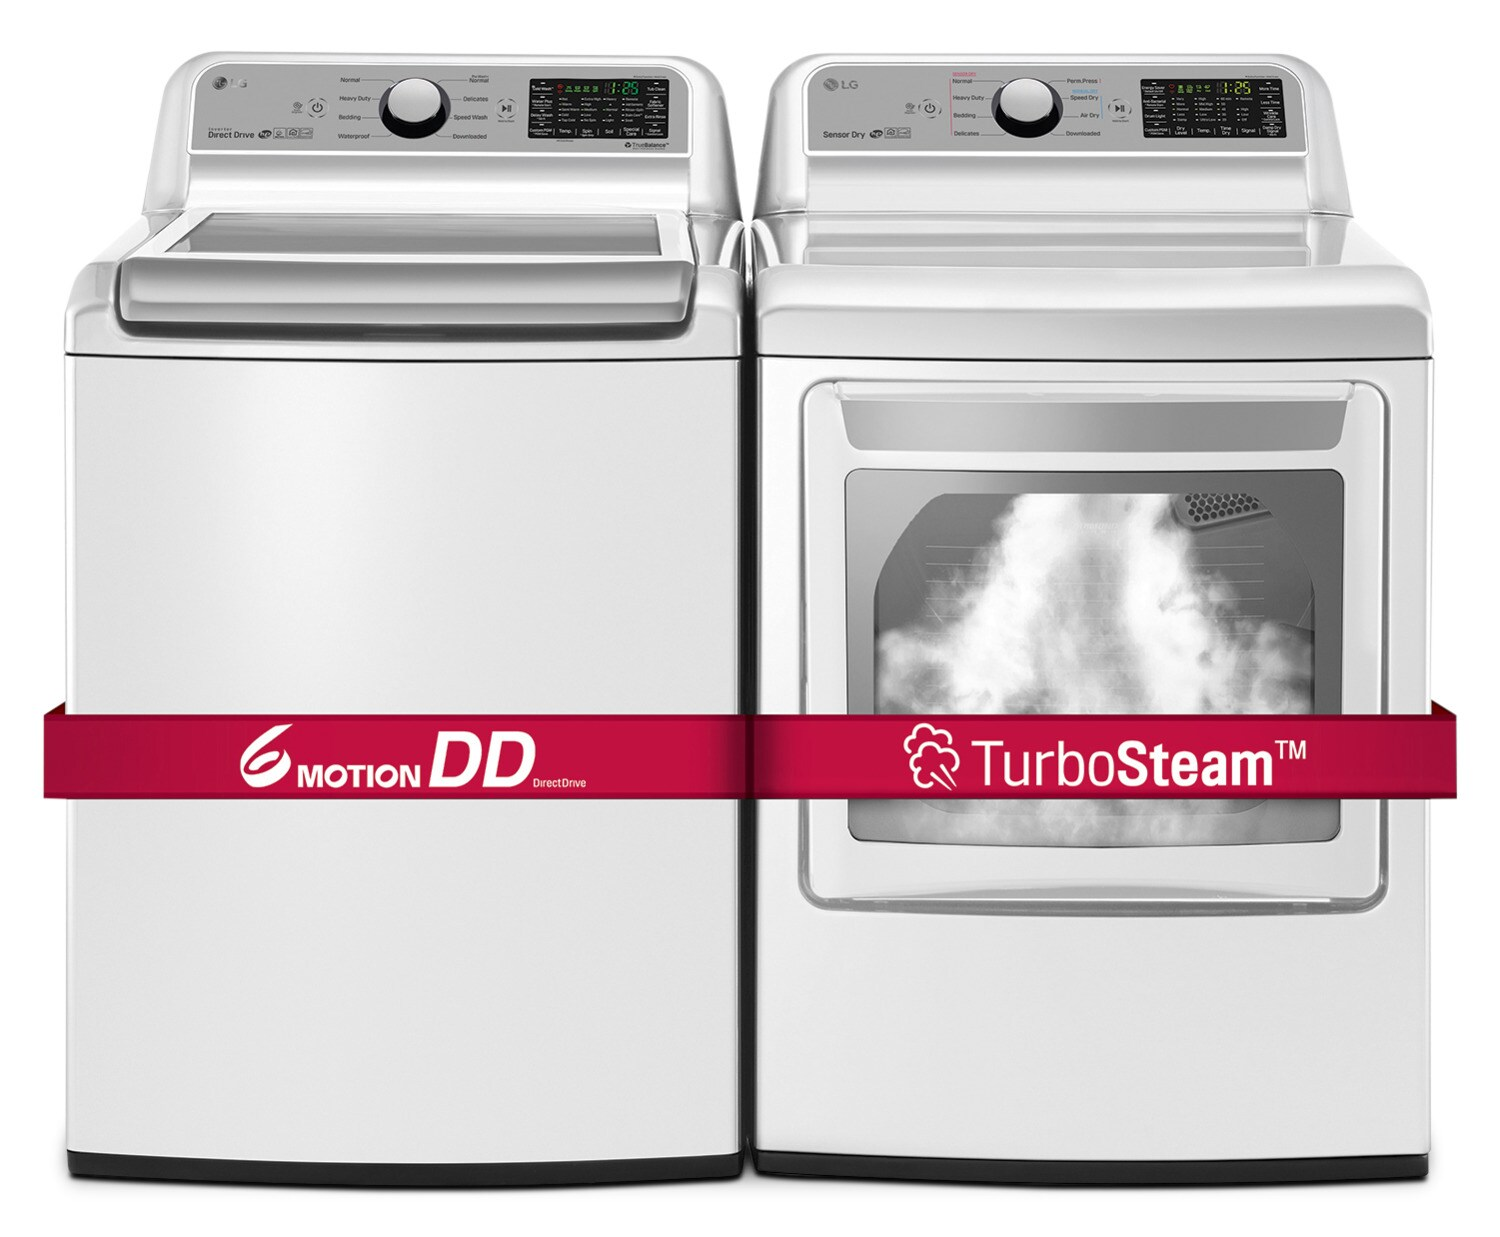 LG 5.8 Cu. Ft. Top-Load Washer and 7.3 Cu. Ft. Electric Dryer